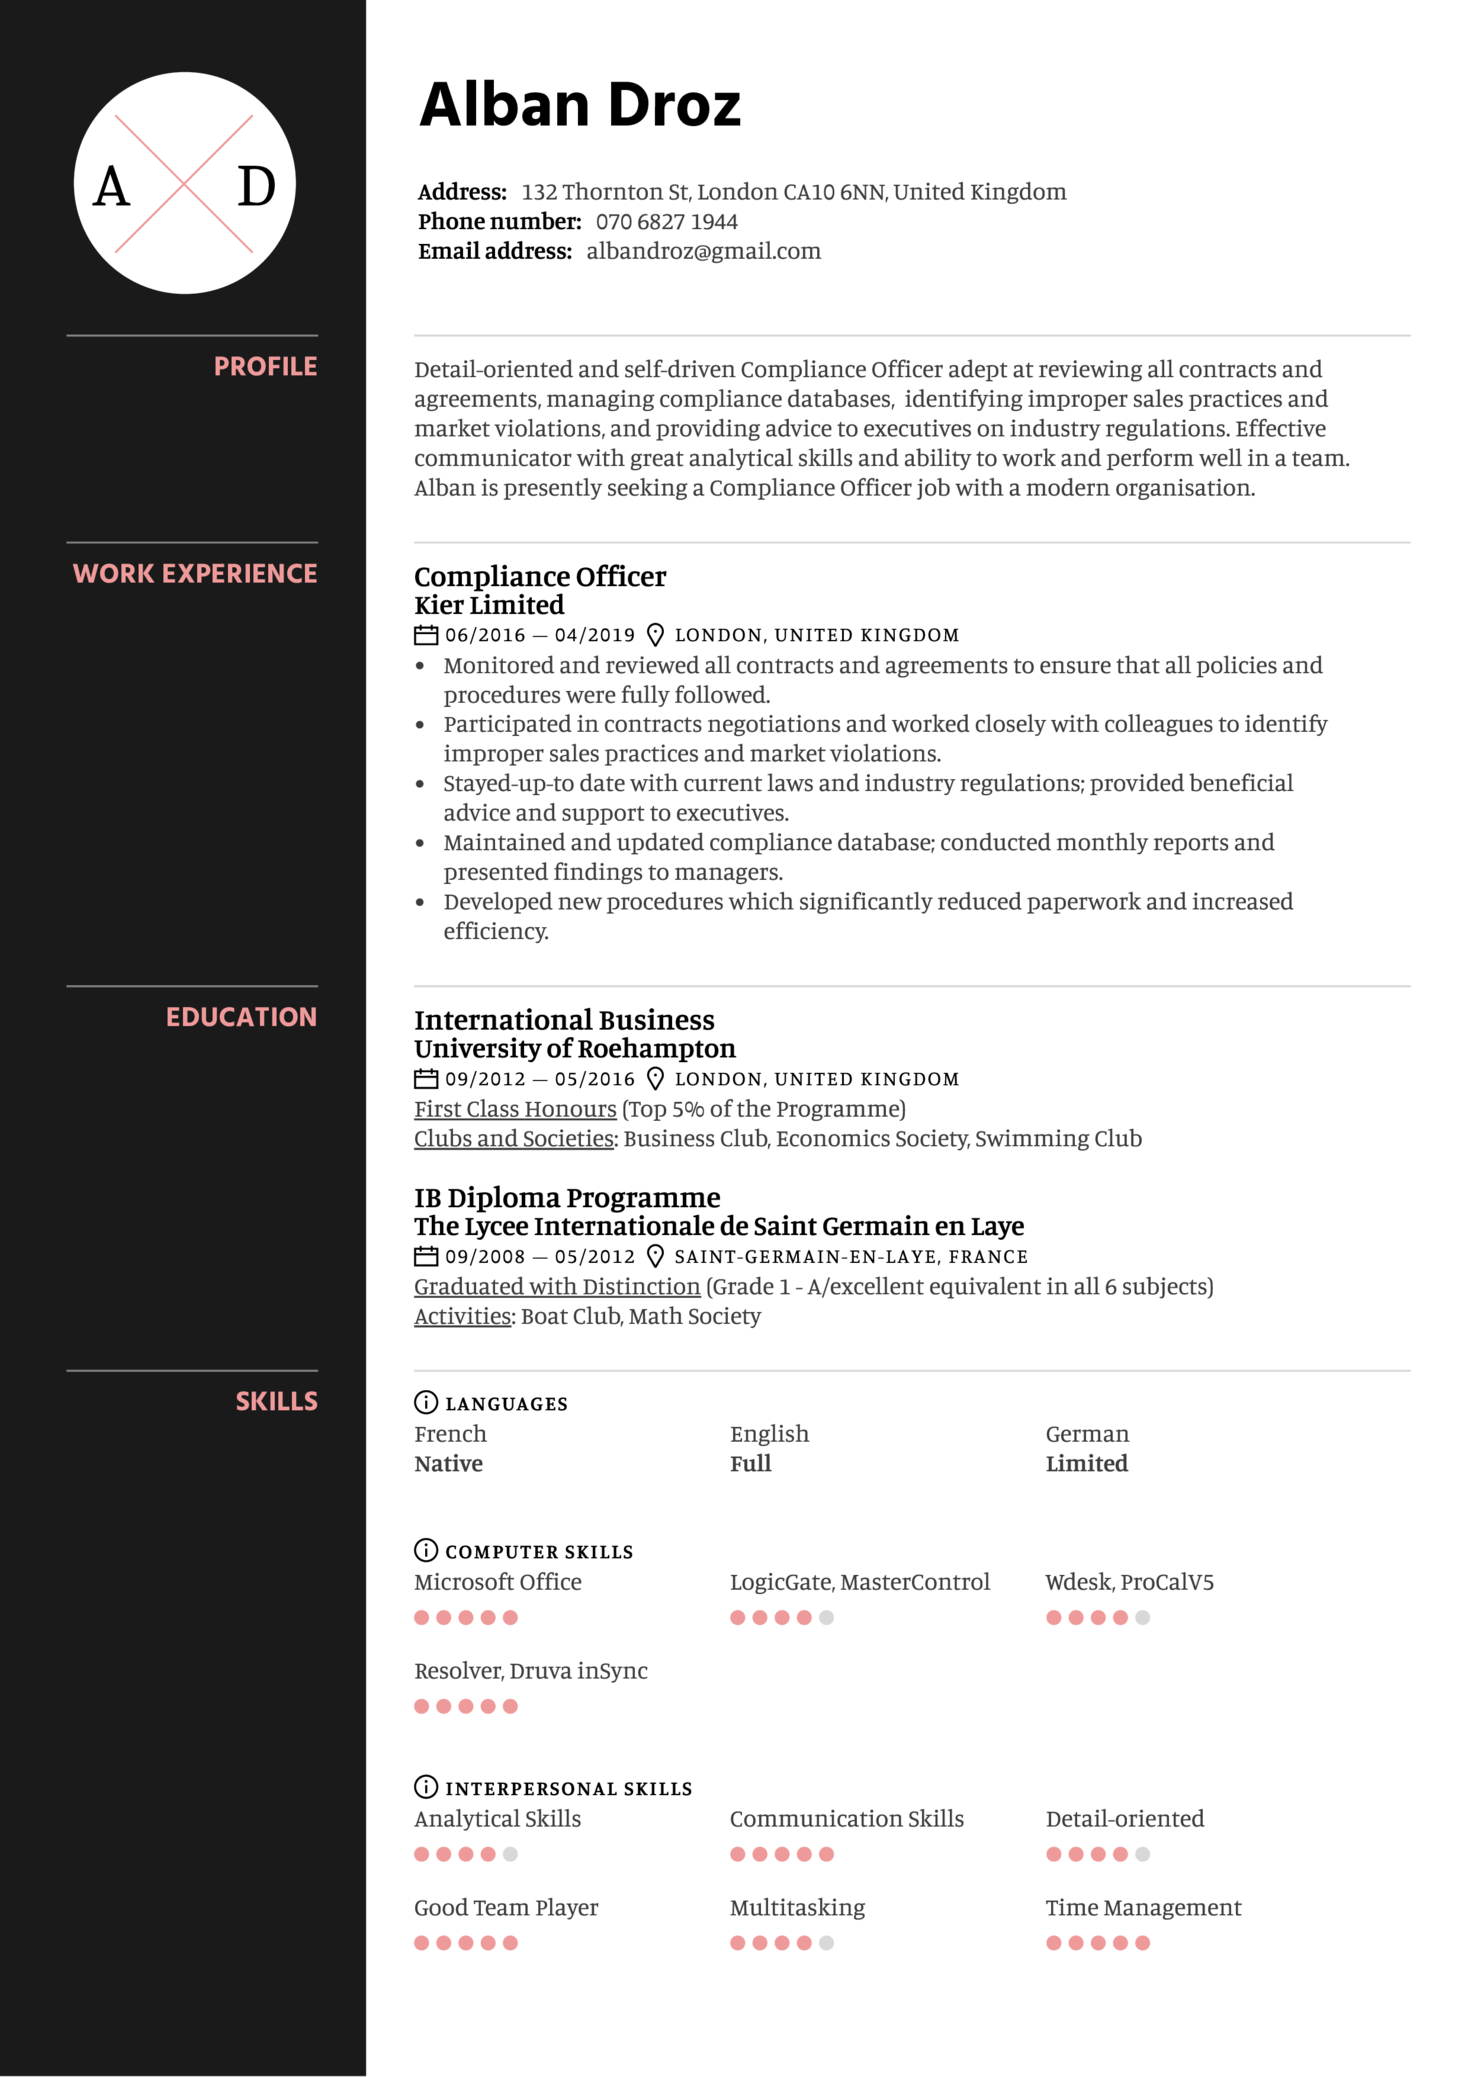 Compliance Officer Resume Template (Part 1)